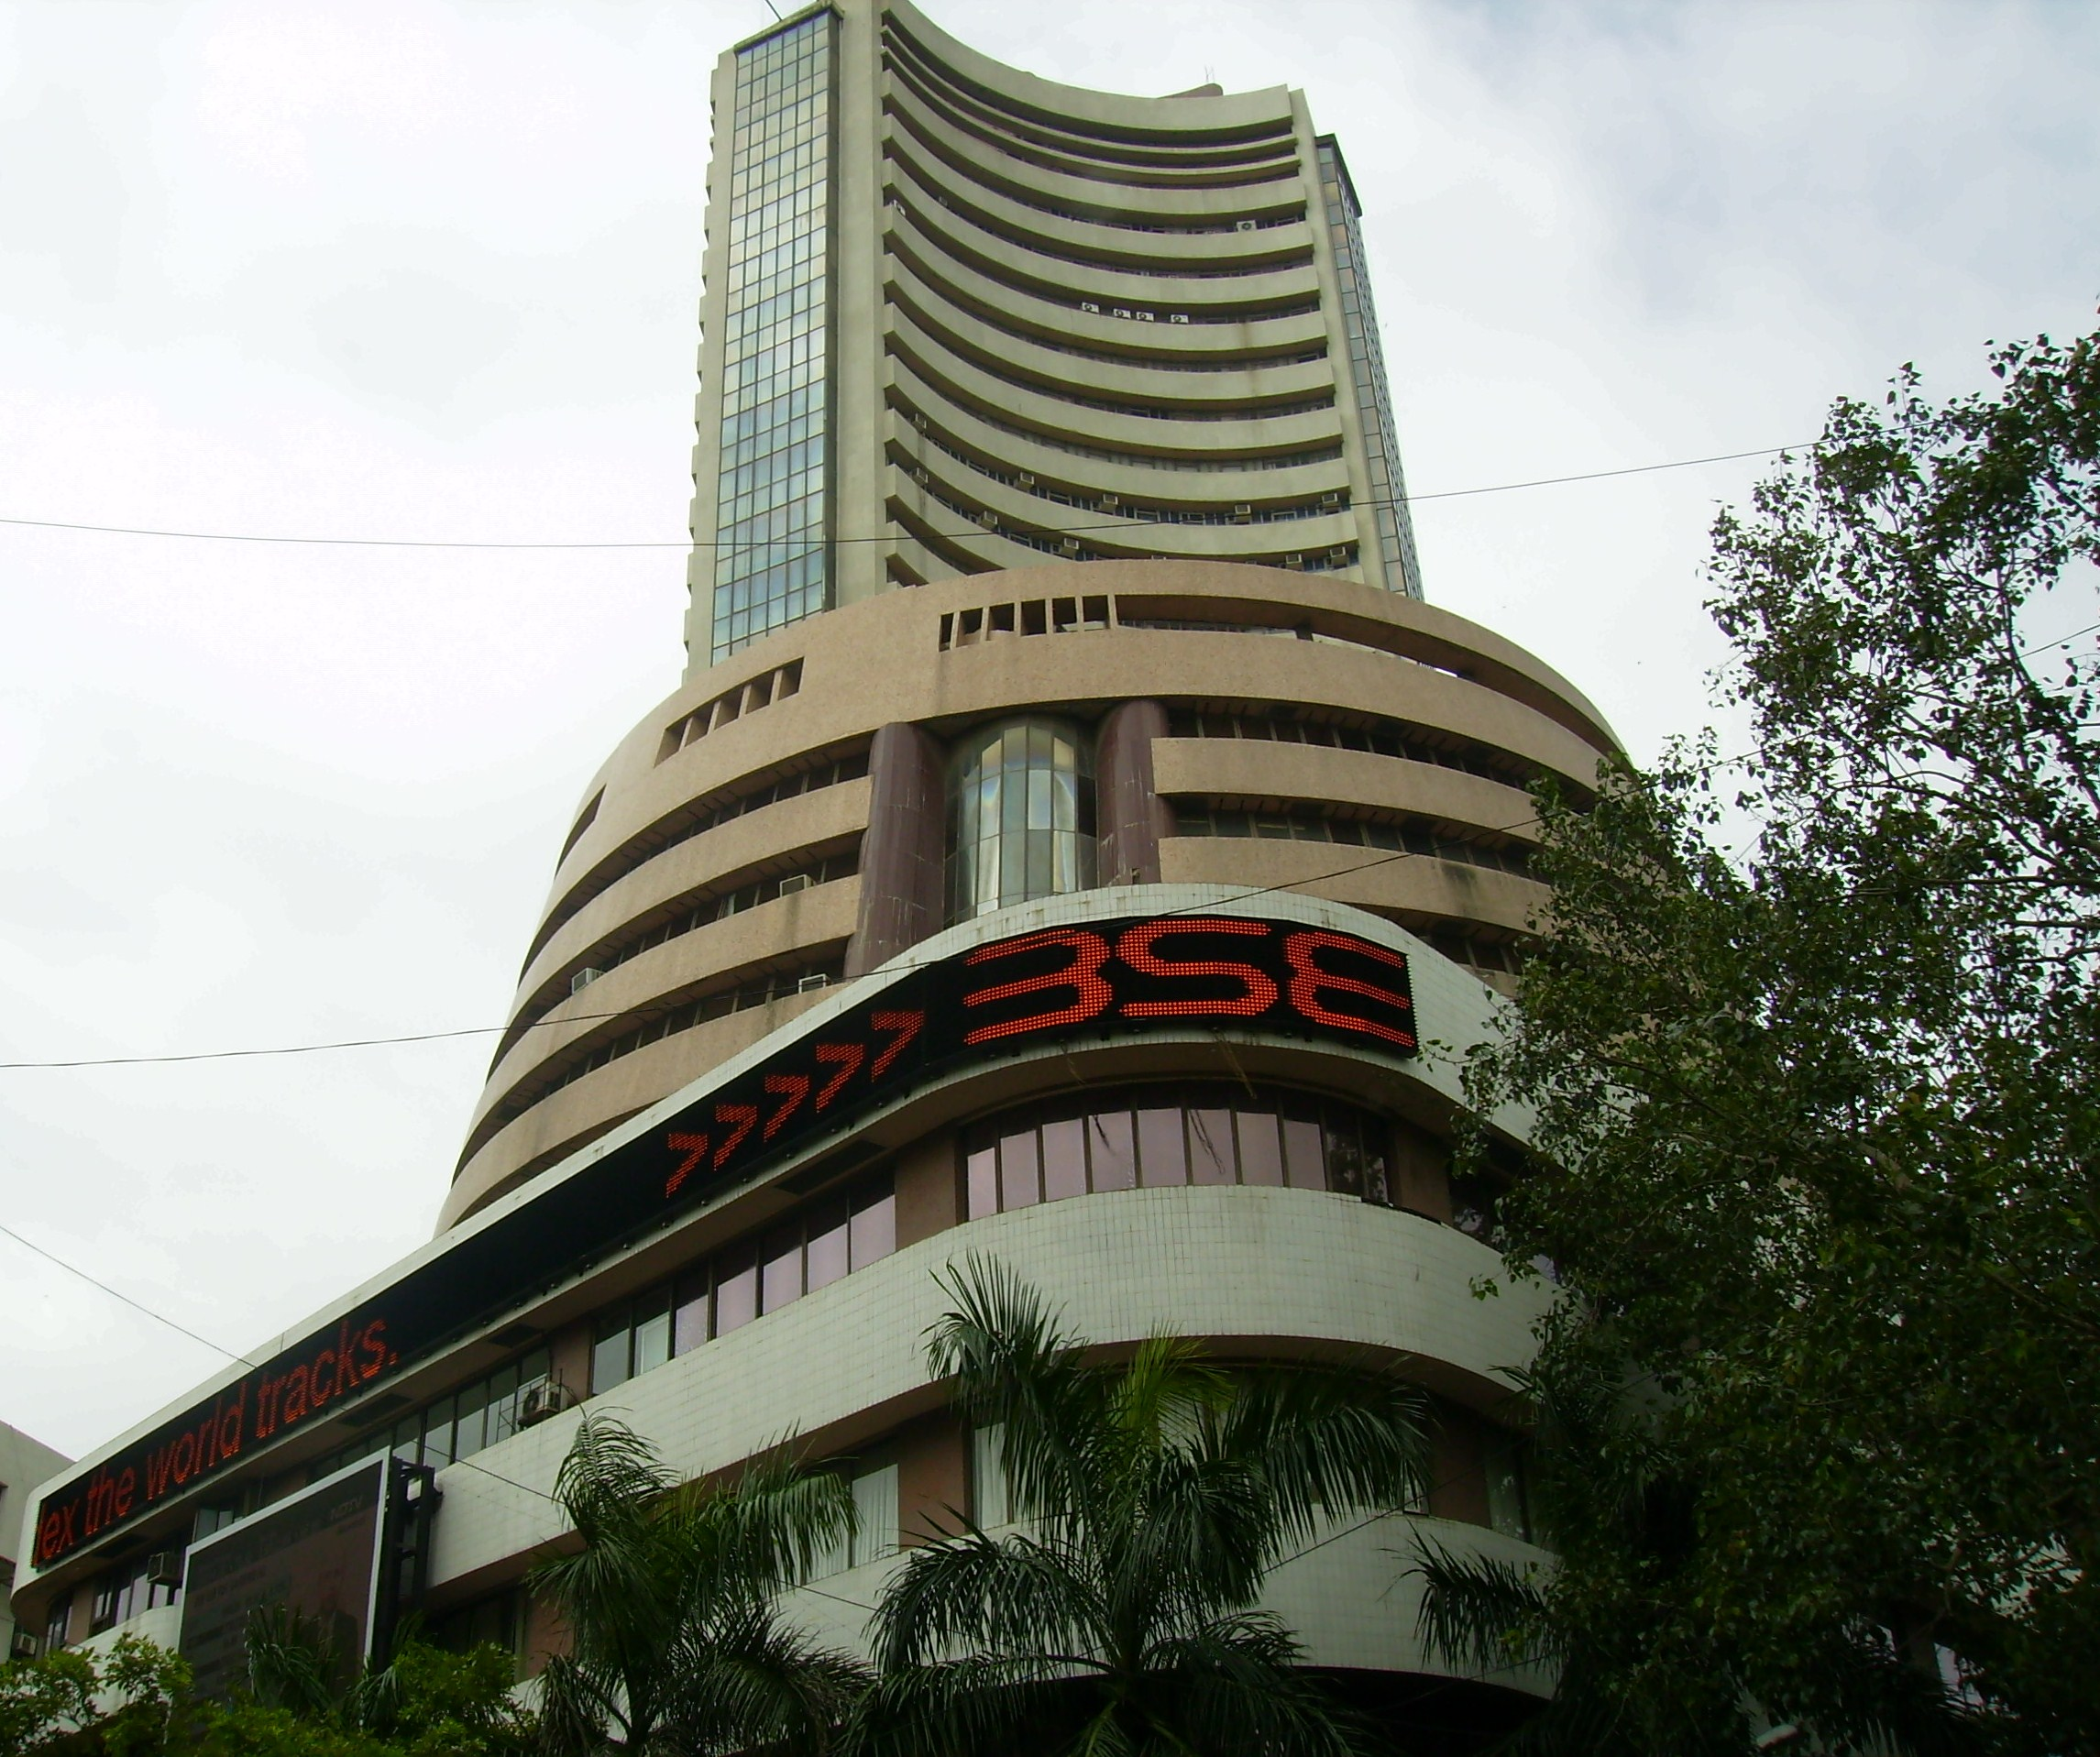 Chart For Indian Stock Market: BSE - Bombay Stock Exchange Building.jpg - Wikimedia Commons,Chart